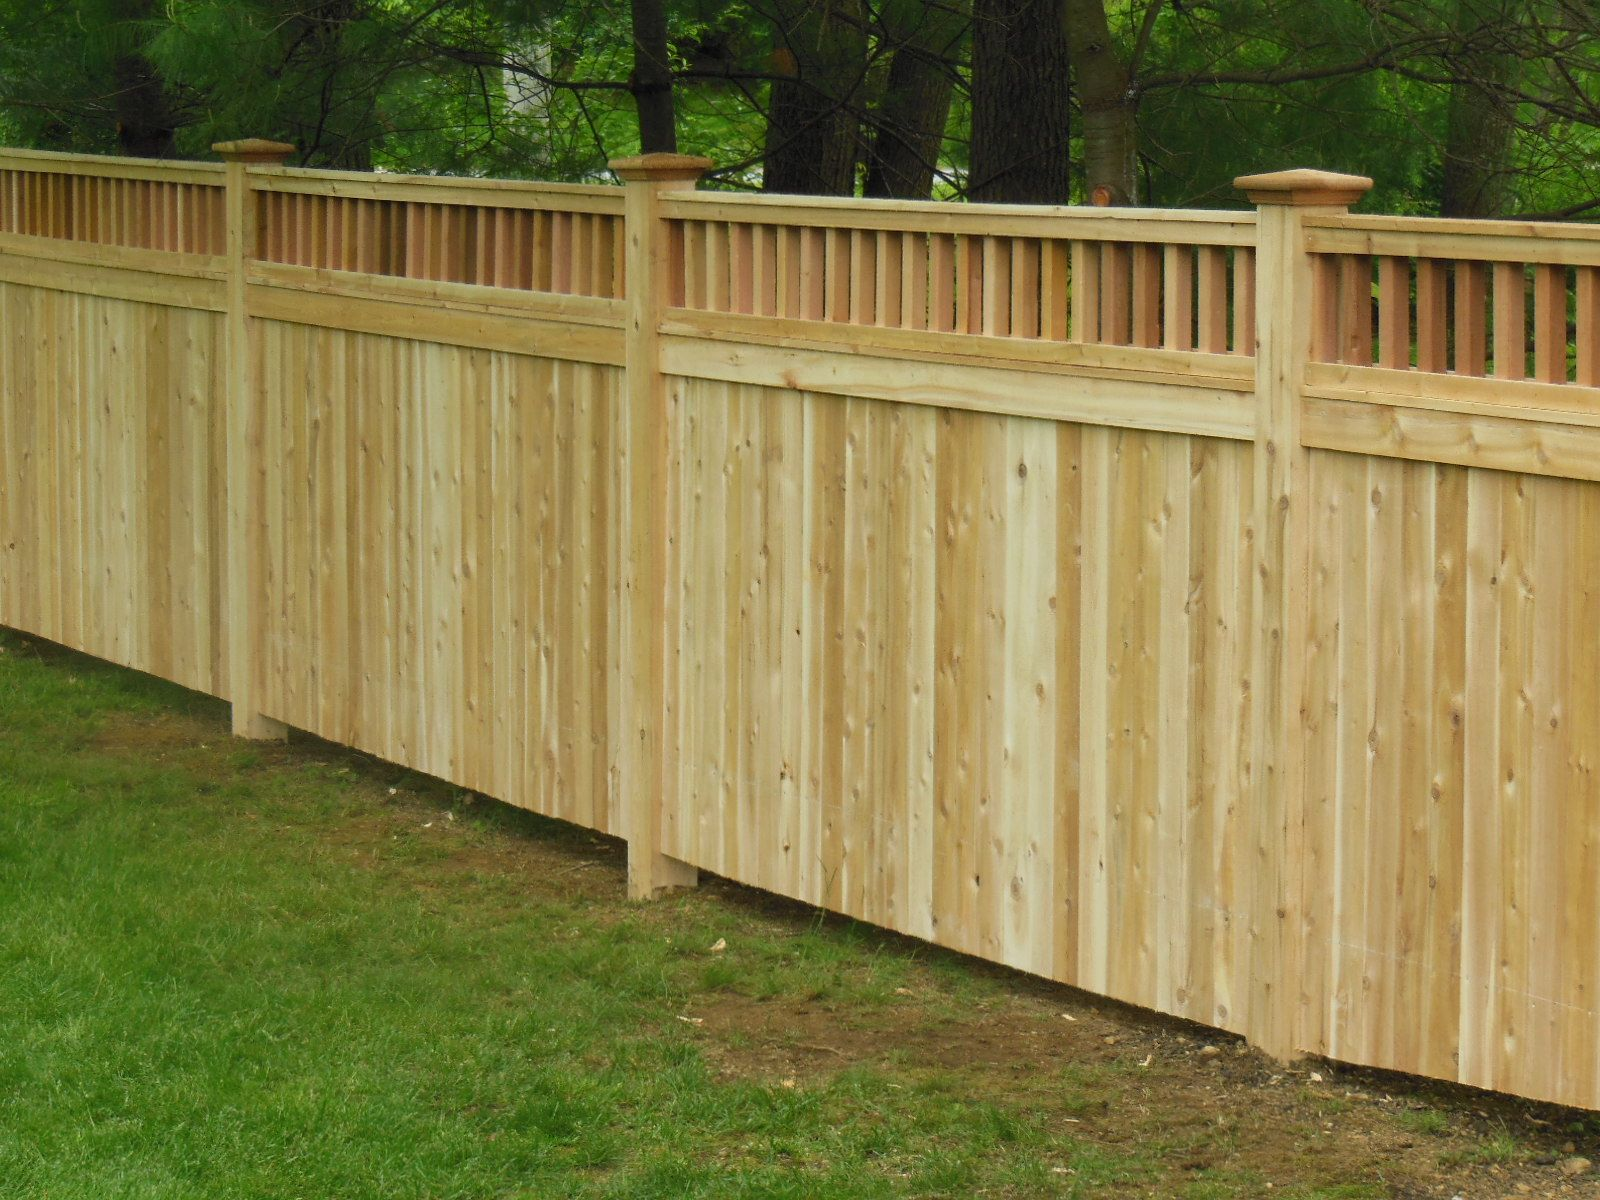 Pool privacy fence with lattice and an arbor gate landscaping a natural wood cedar privacy fence featuring tongue and groove privacy fence panels with an baanklon Choice Image